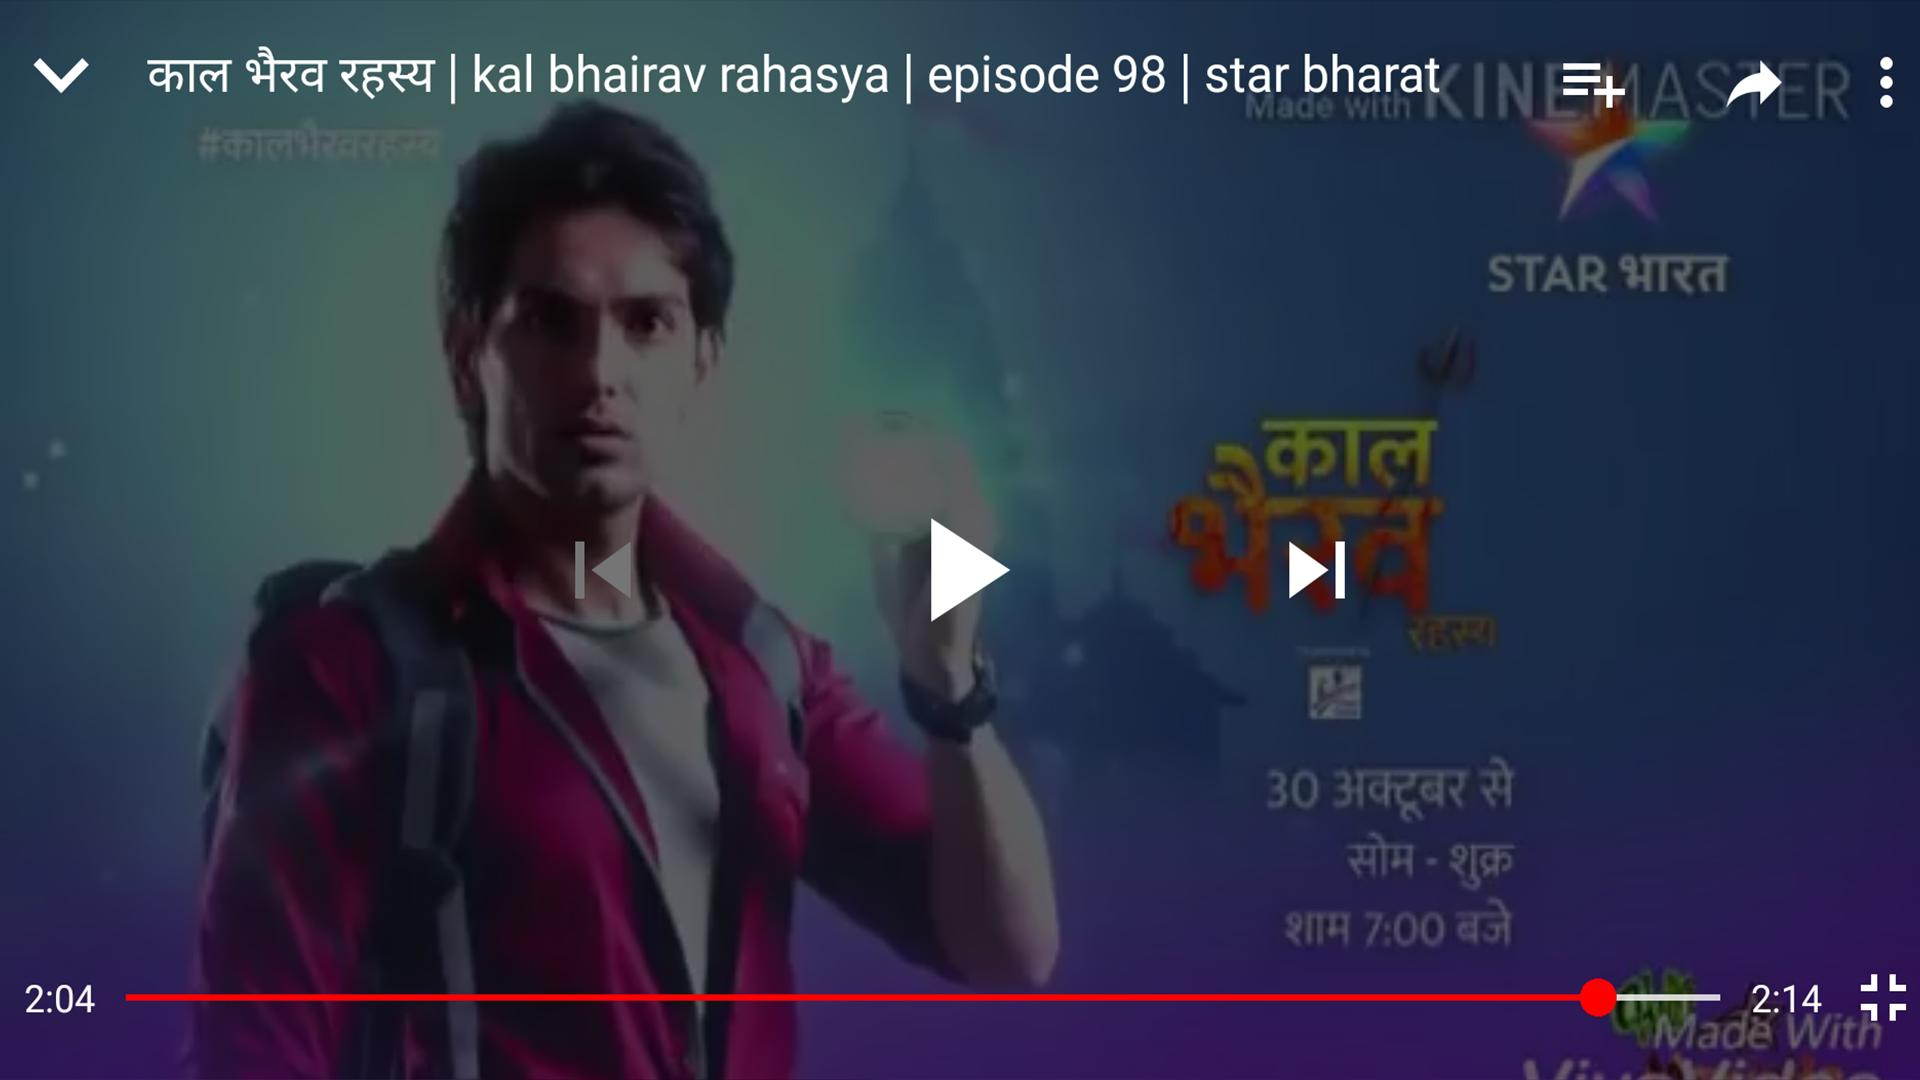 Star भारत for Android - APK Download